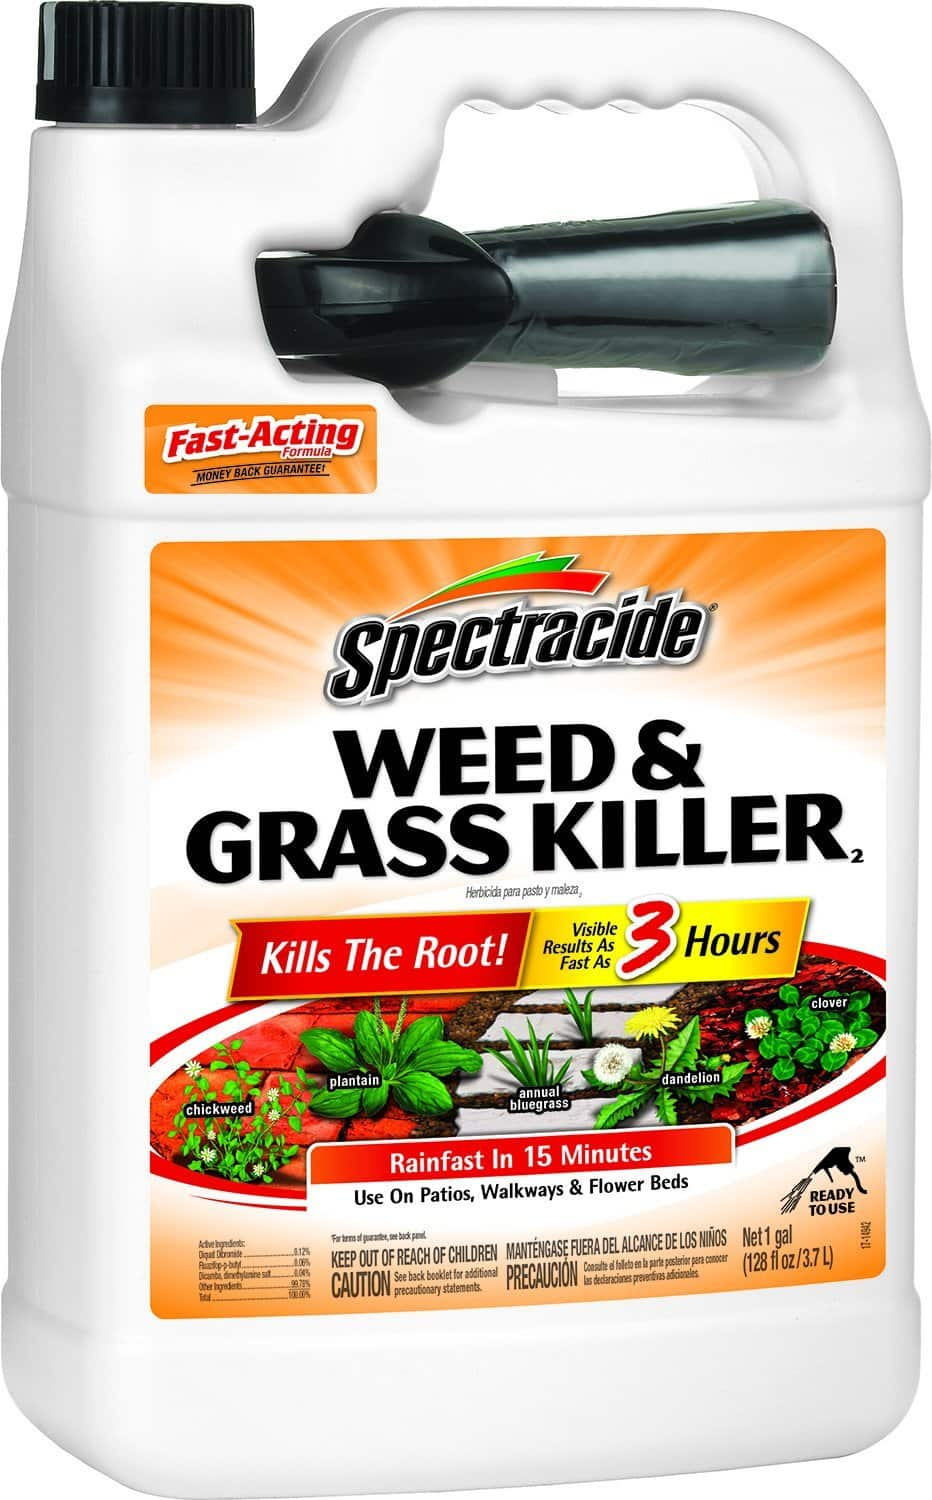 Spectracide Weed & Grass Killer 2 (Ready-to-Use) (HG-96017) (1 gal)  (Add-on Item) $3.50